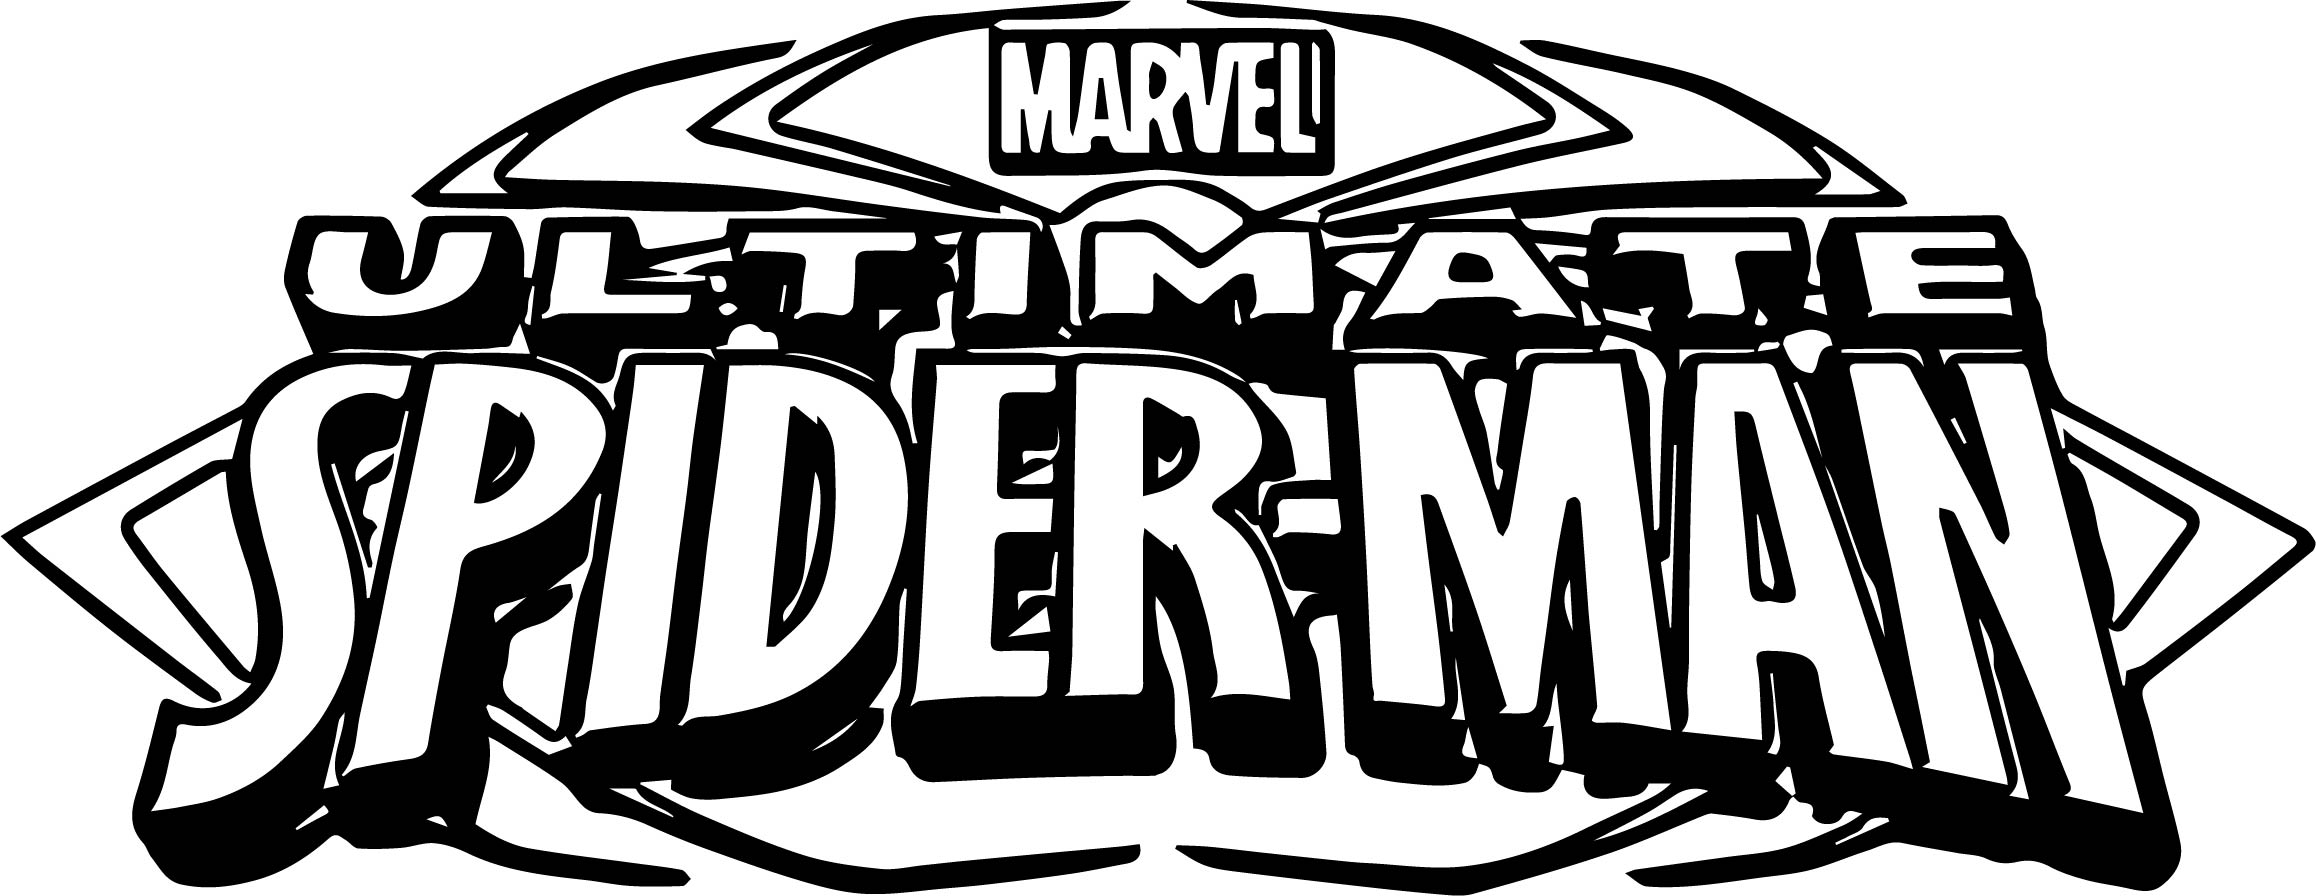 Ultimate Spider Man Logo Coloring Page